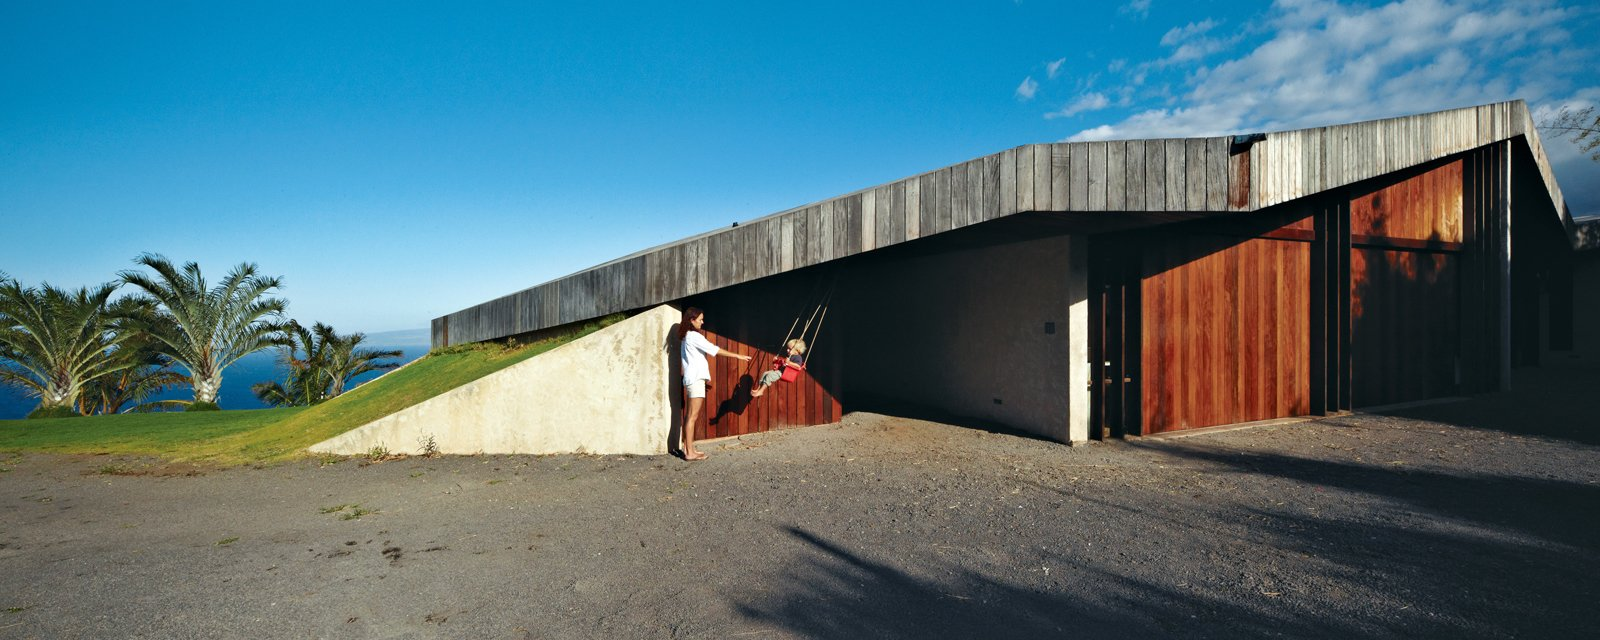 Exterior and Wood Siding Material There are no paints, lacquers, or polyurethane finishes used anywhere in the house. Indoors and out, the materials were kept simple: The exterior walls and roof are oiled ipe, selected for its hardness and weather resistance.  Photo 10 of 10 in Clifftop House with Angled Roof in Maui